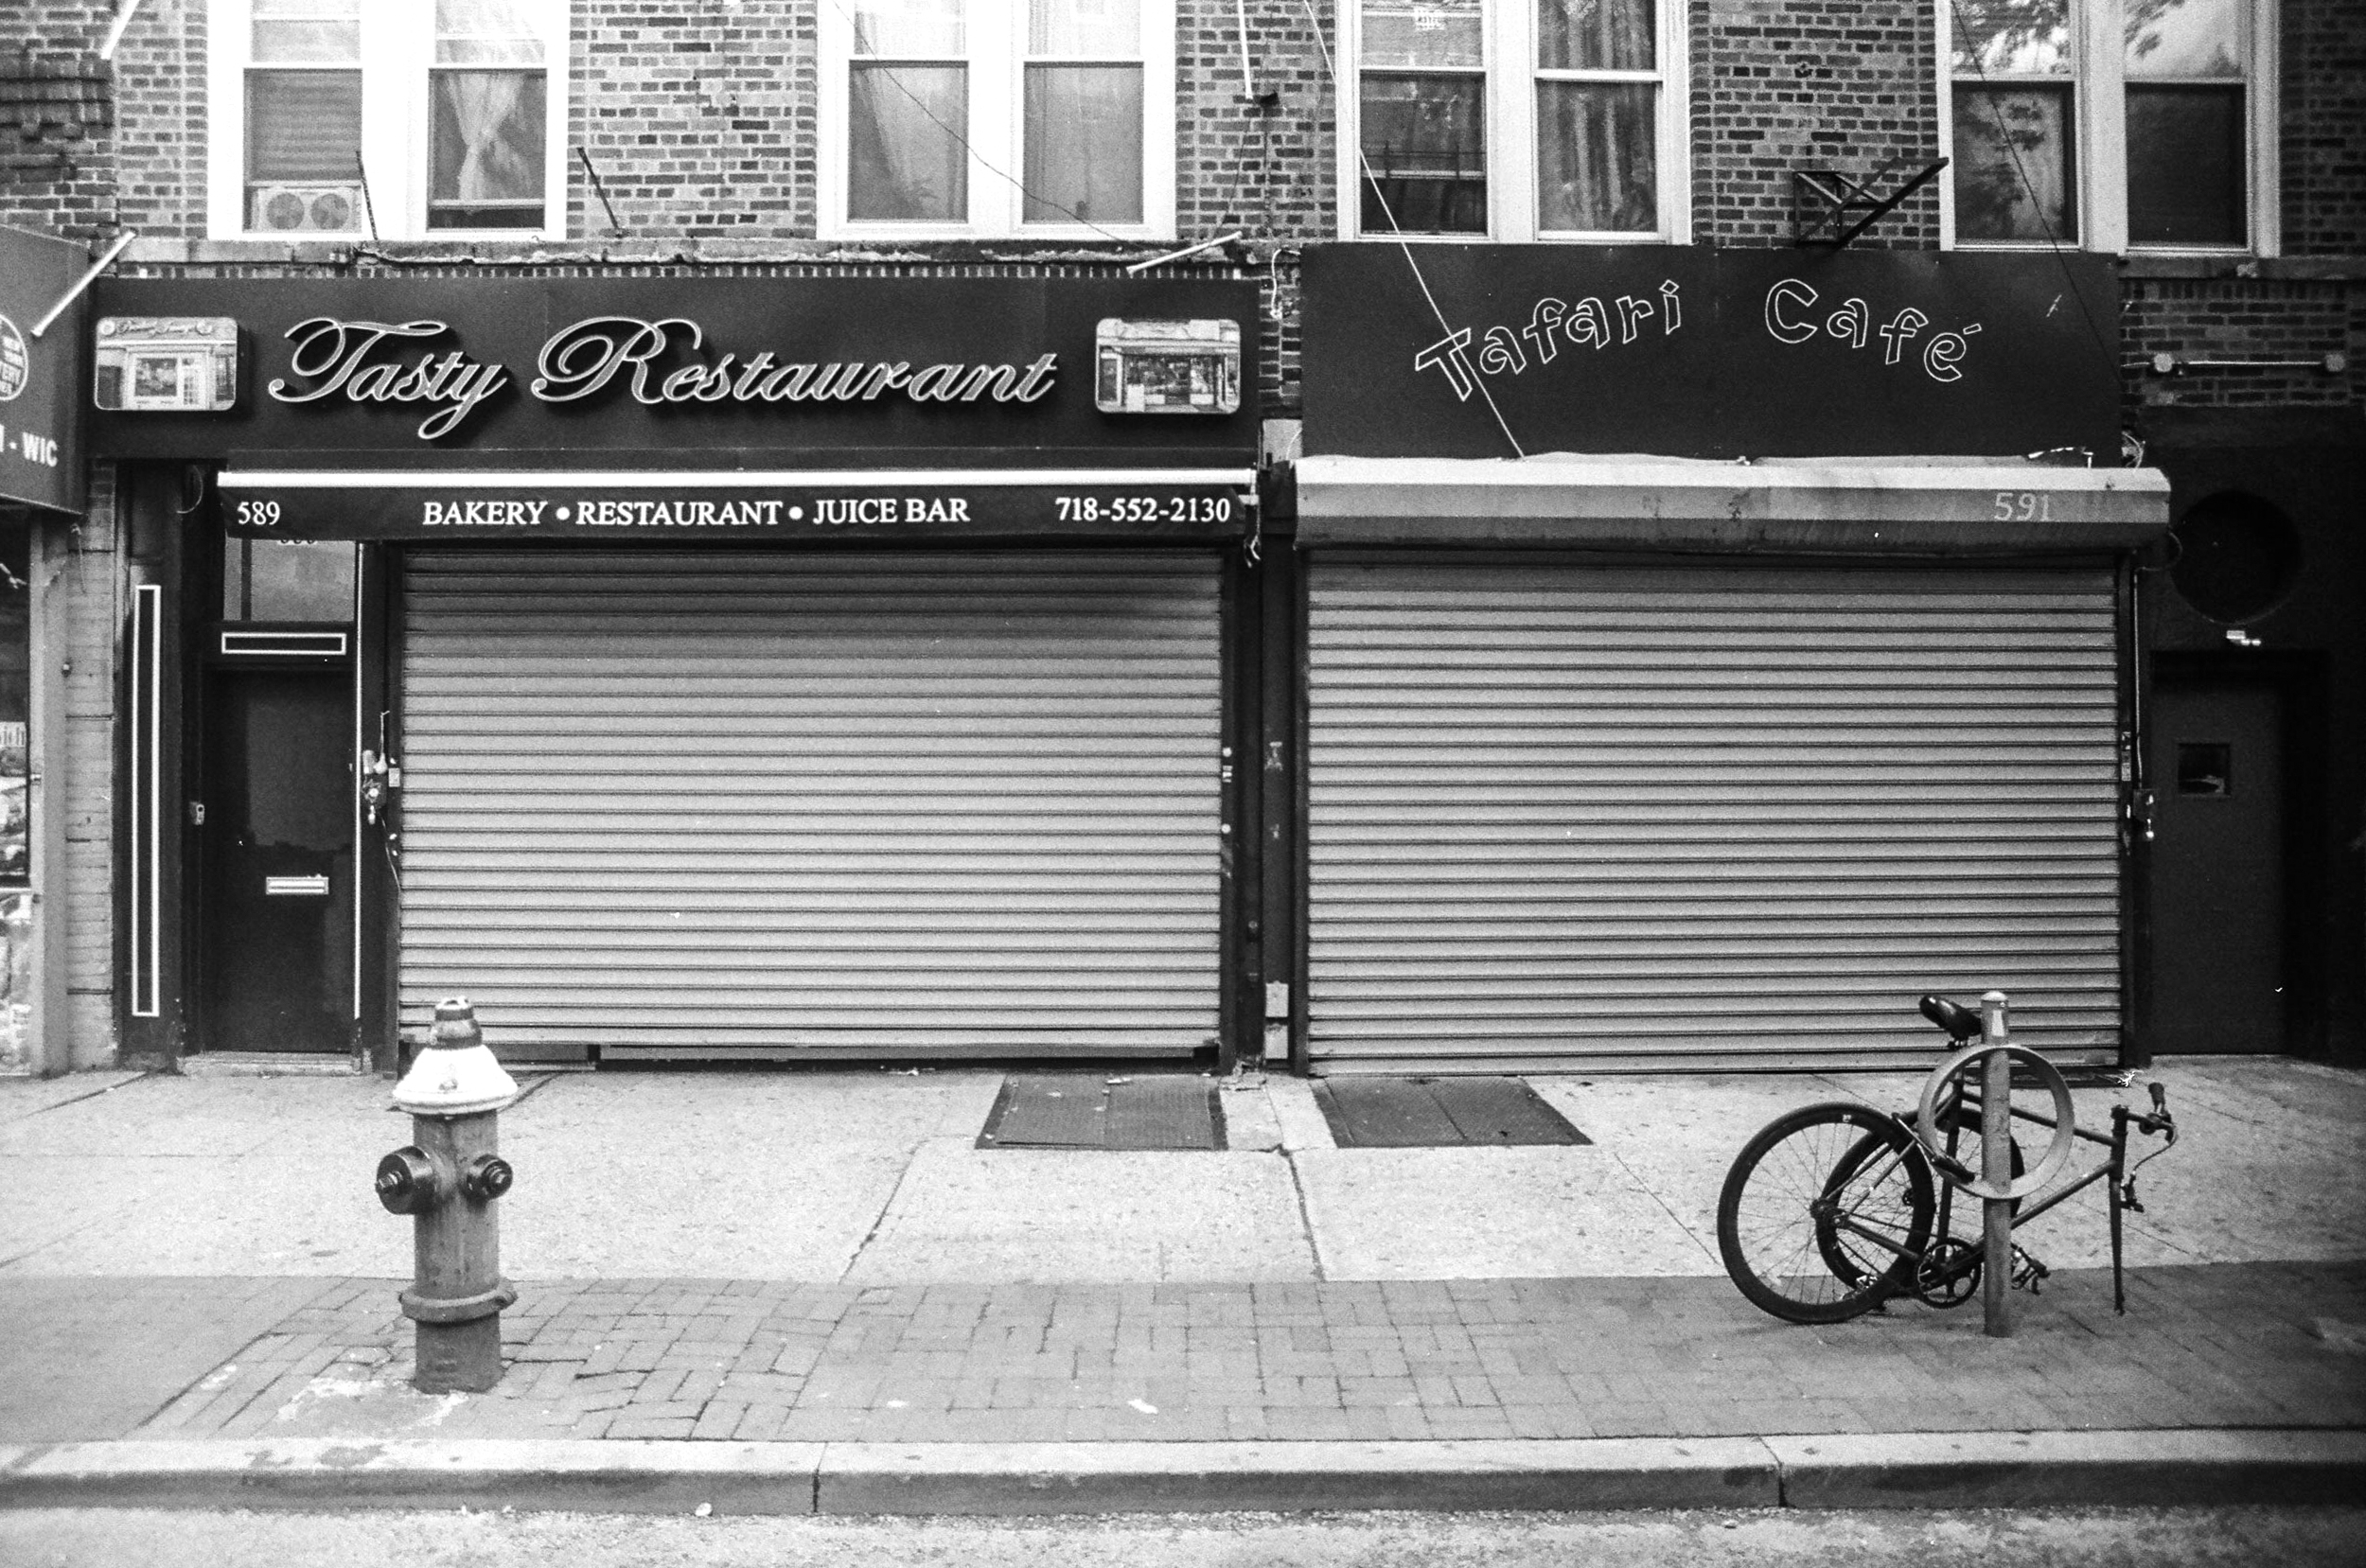 Closed Business and Broken Bike, Flatbush, Brooklyn_Film Photography_NYC_Joe Curry Photography_2018.jpg